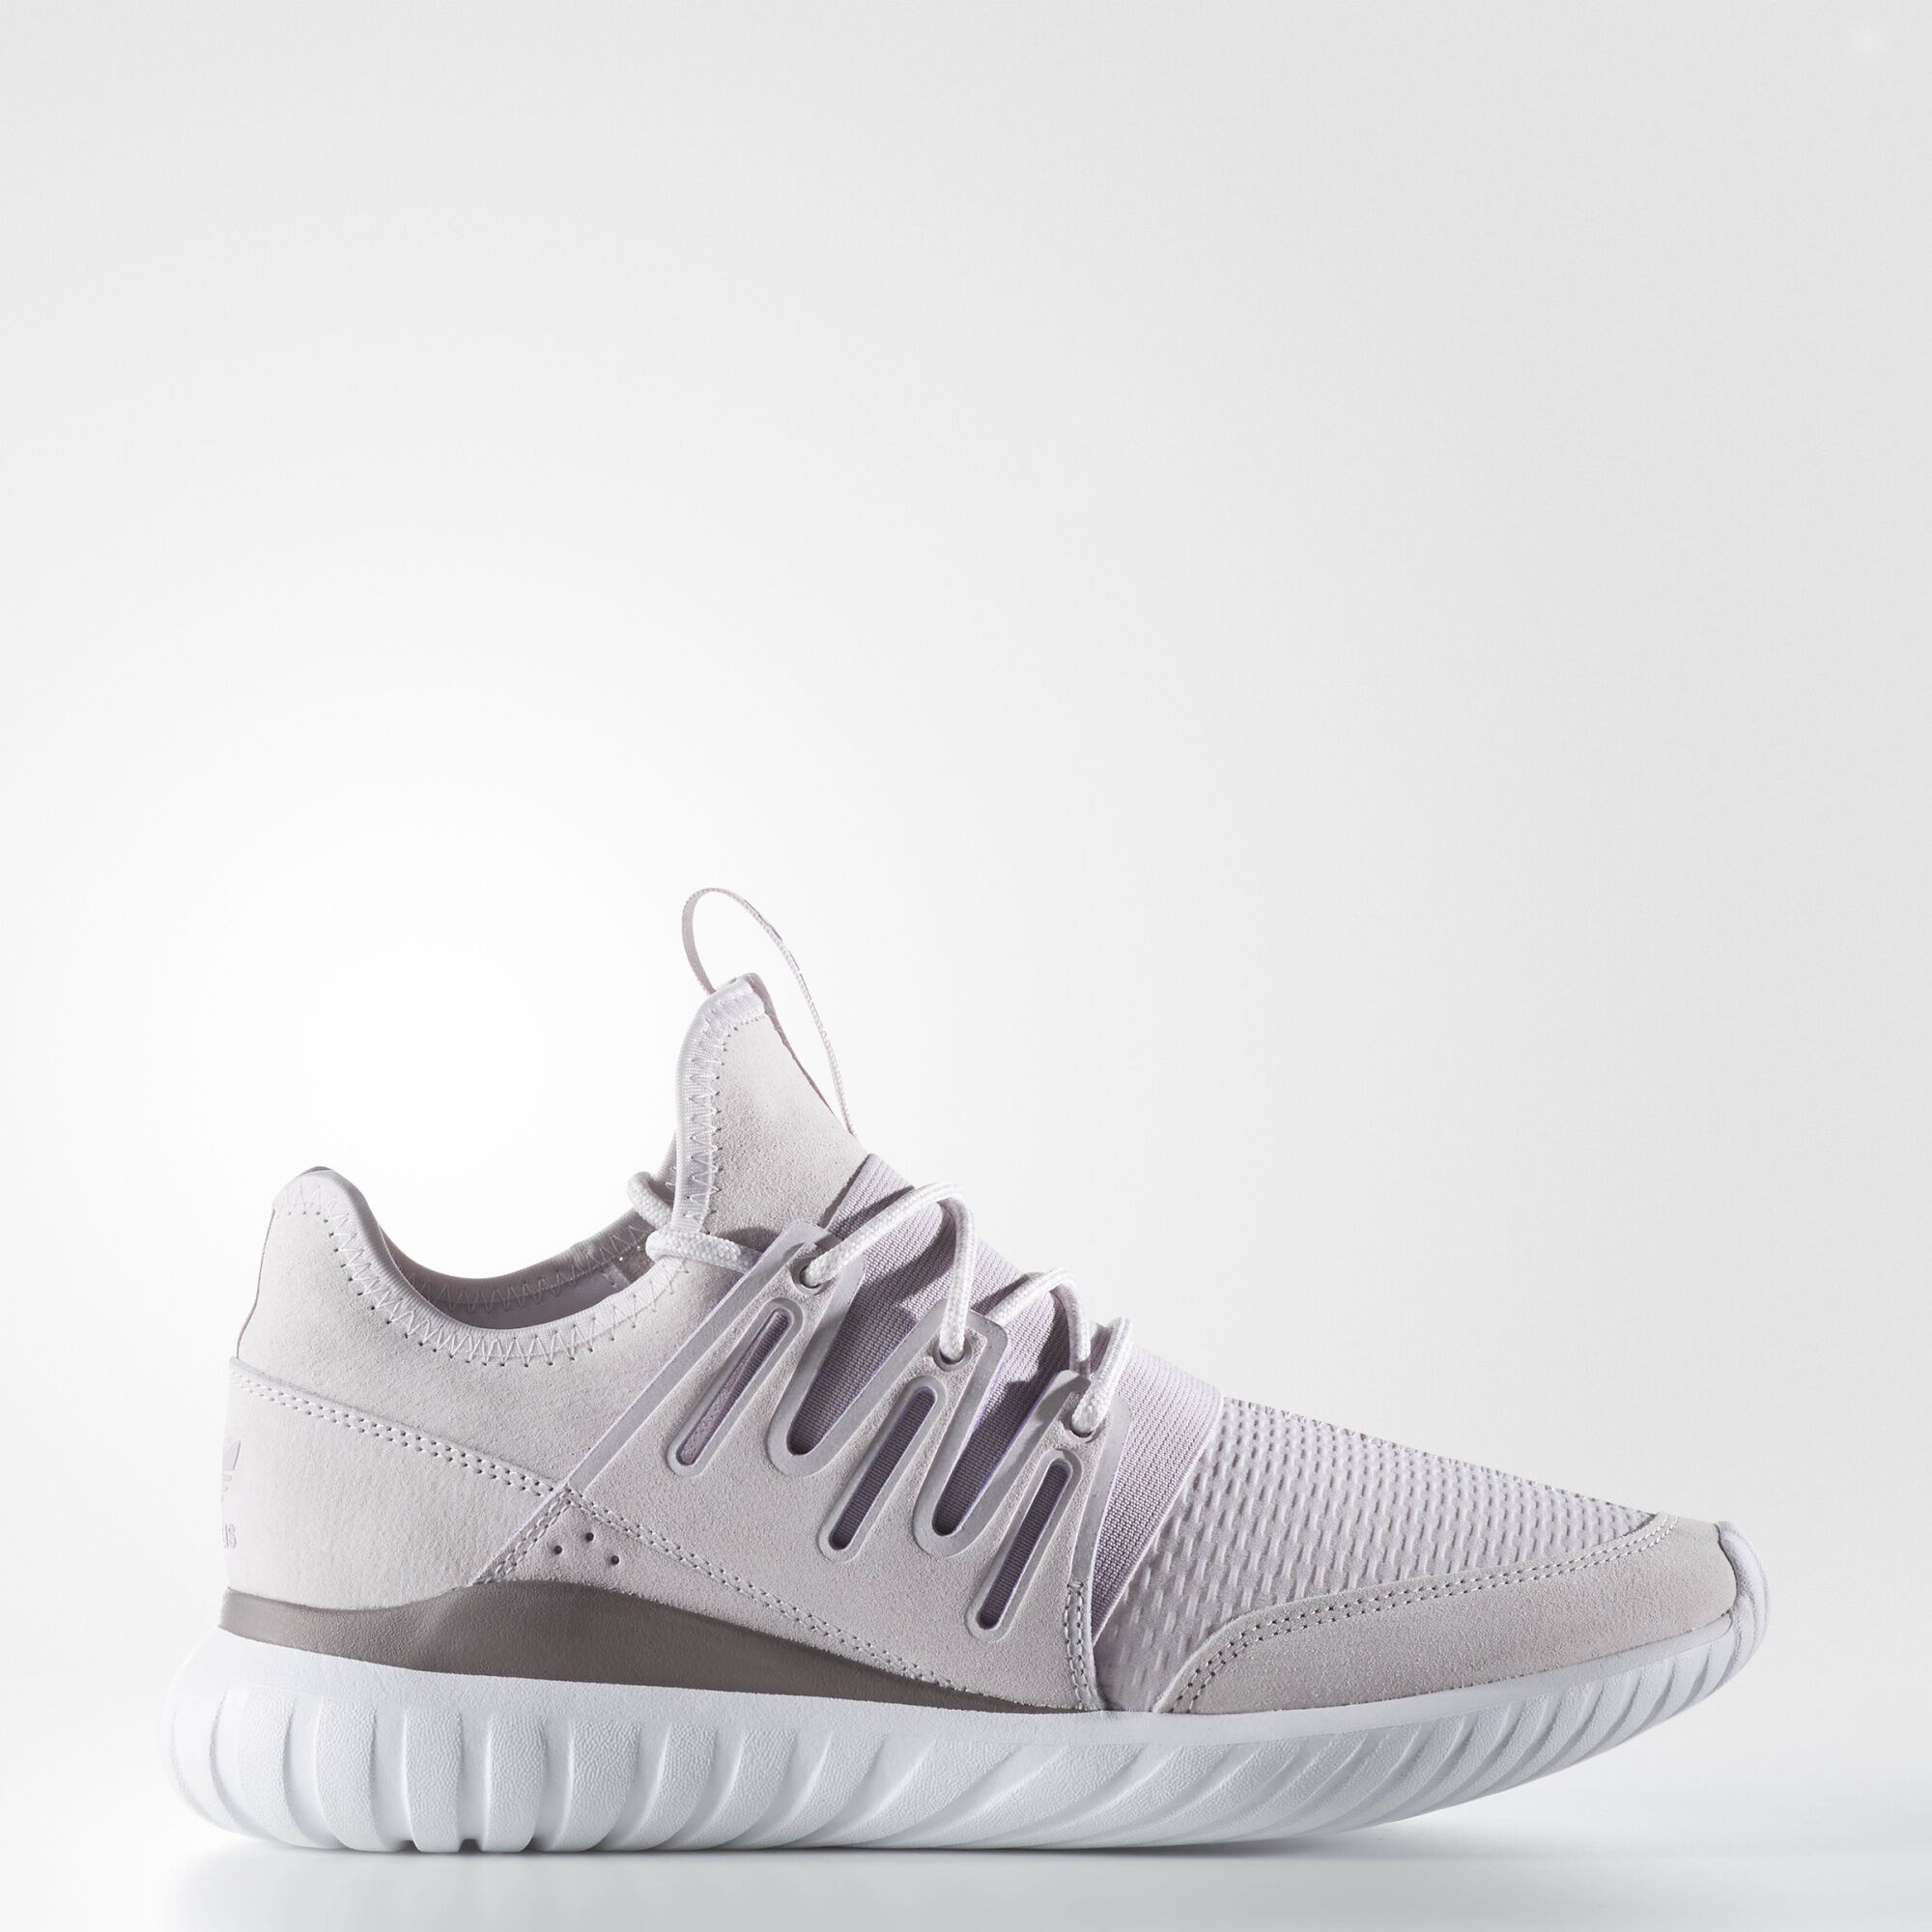 Men 's adidas Tubular Radial Mono Casual Shoes